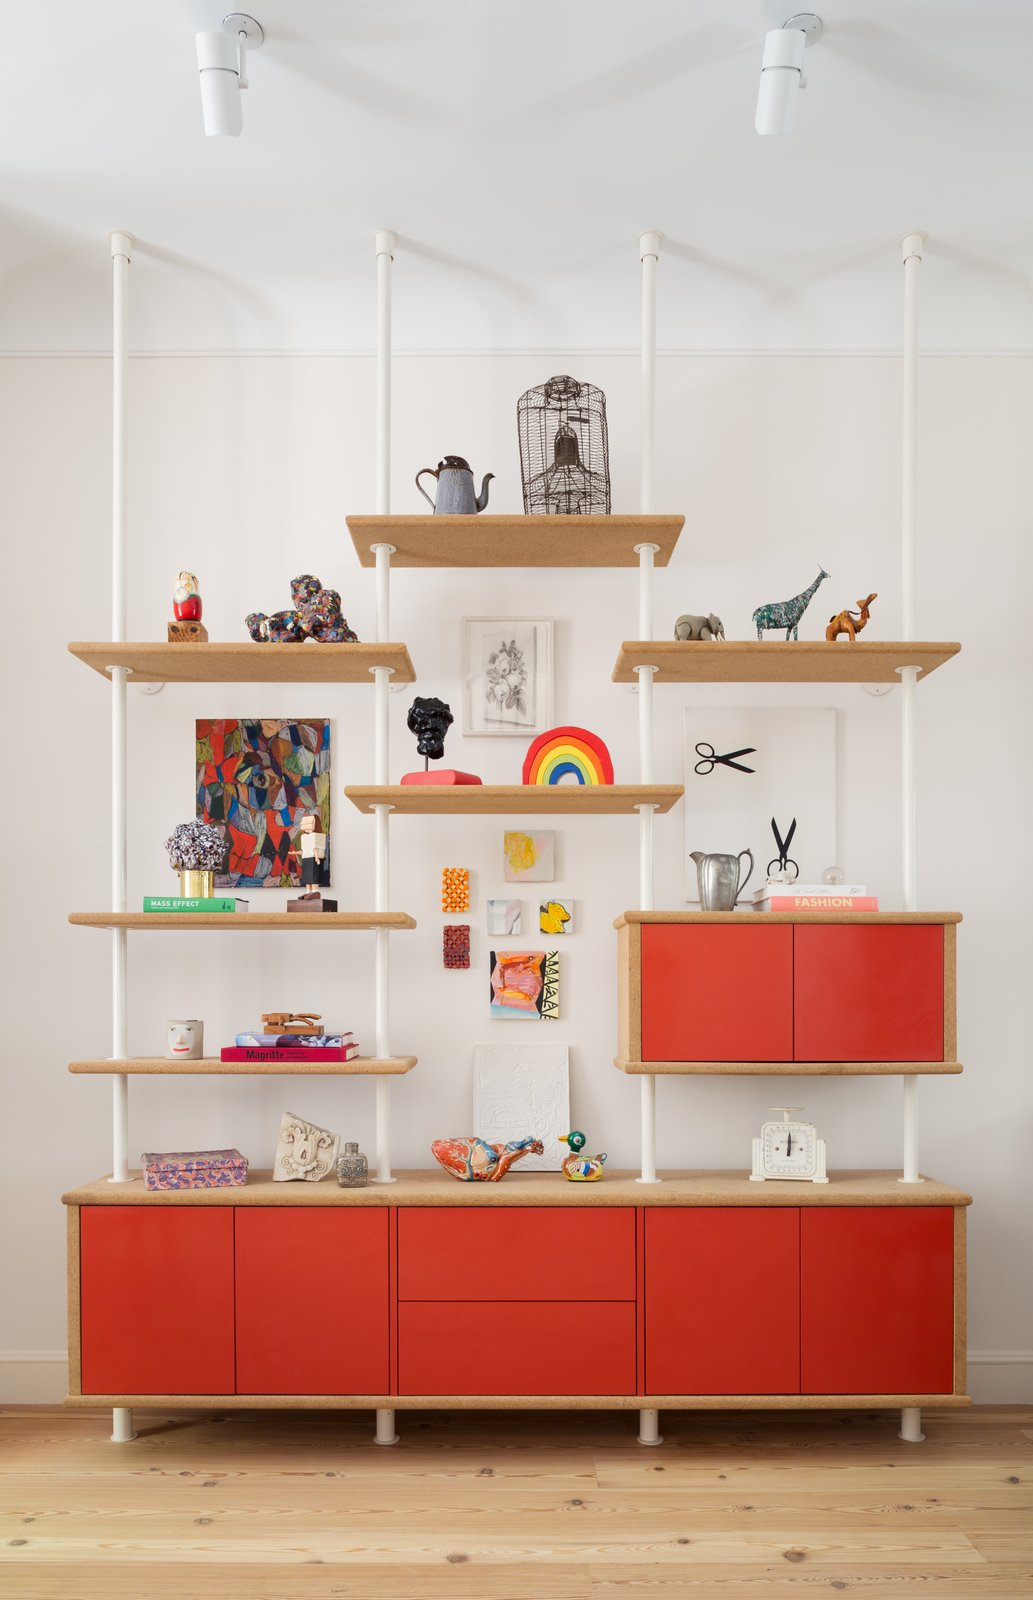 The red wall cabinet was designed by August. The floors throughout the home were replaced with wide, salvaged heart pine floorboards with radiant heat.